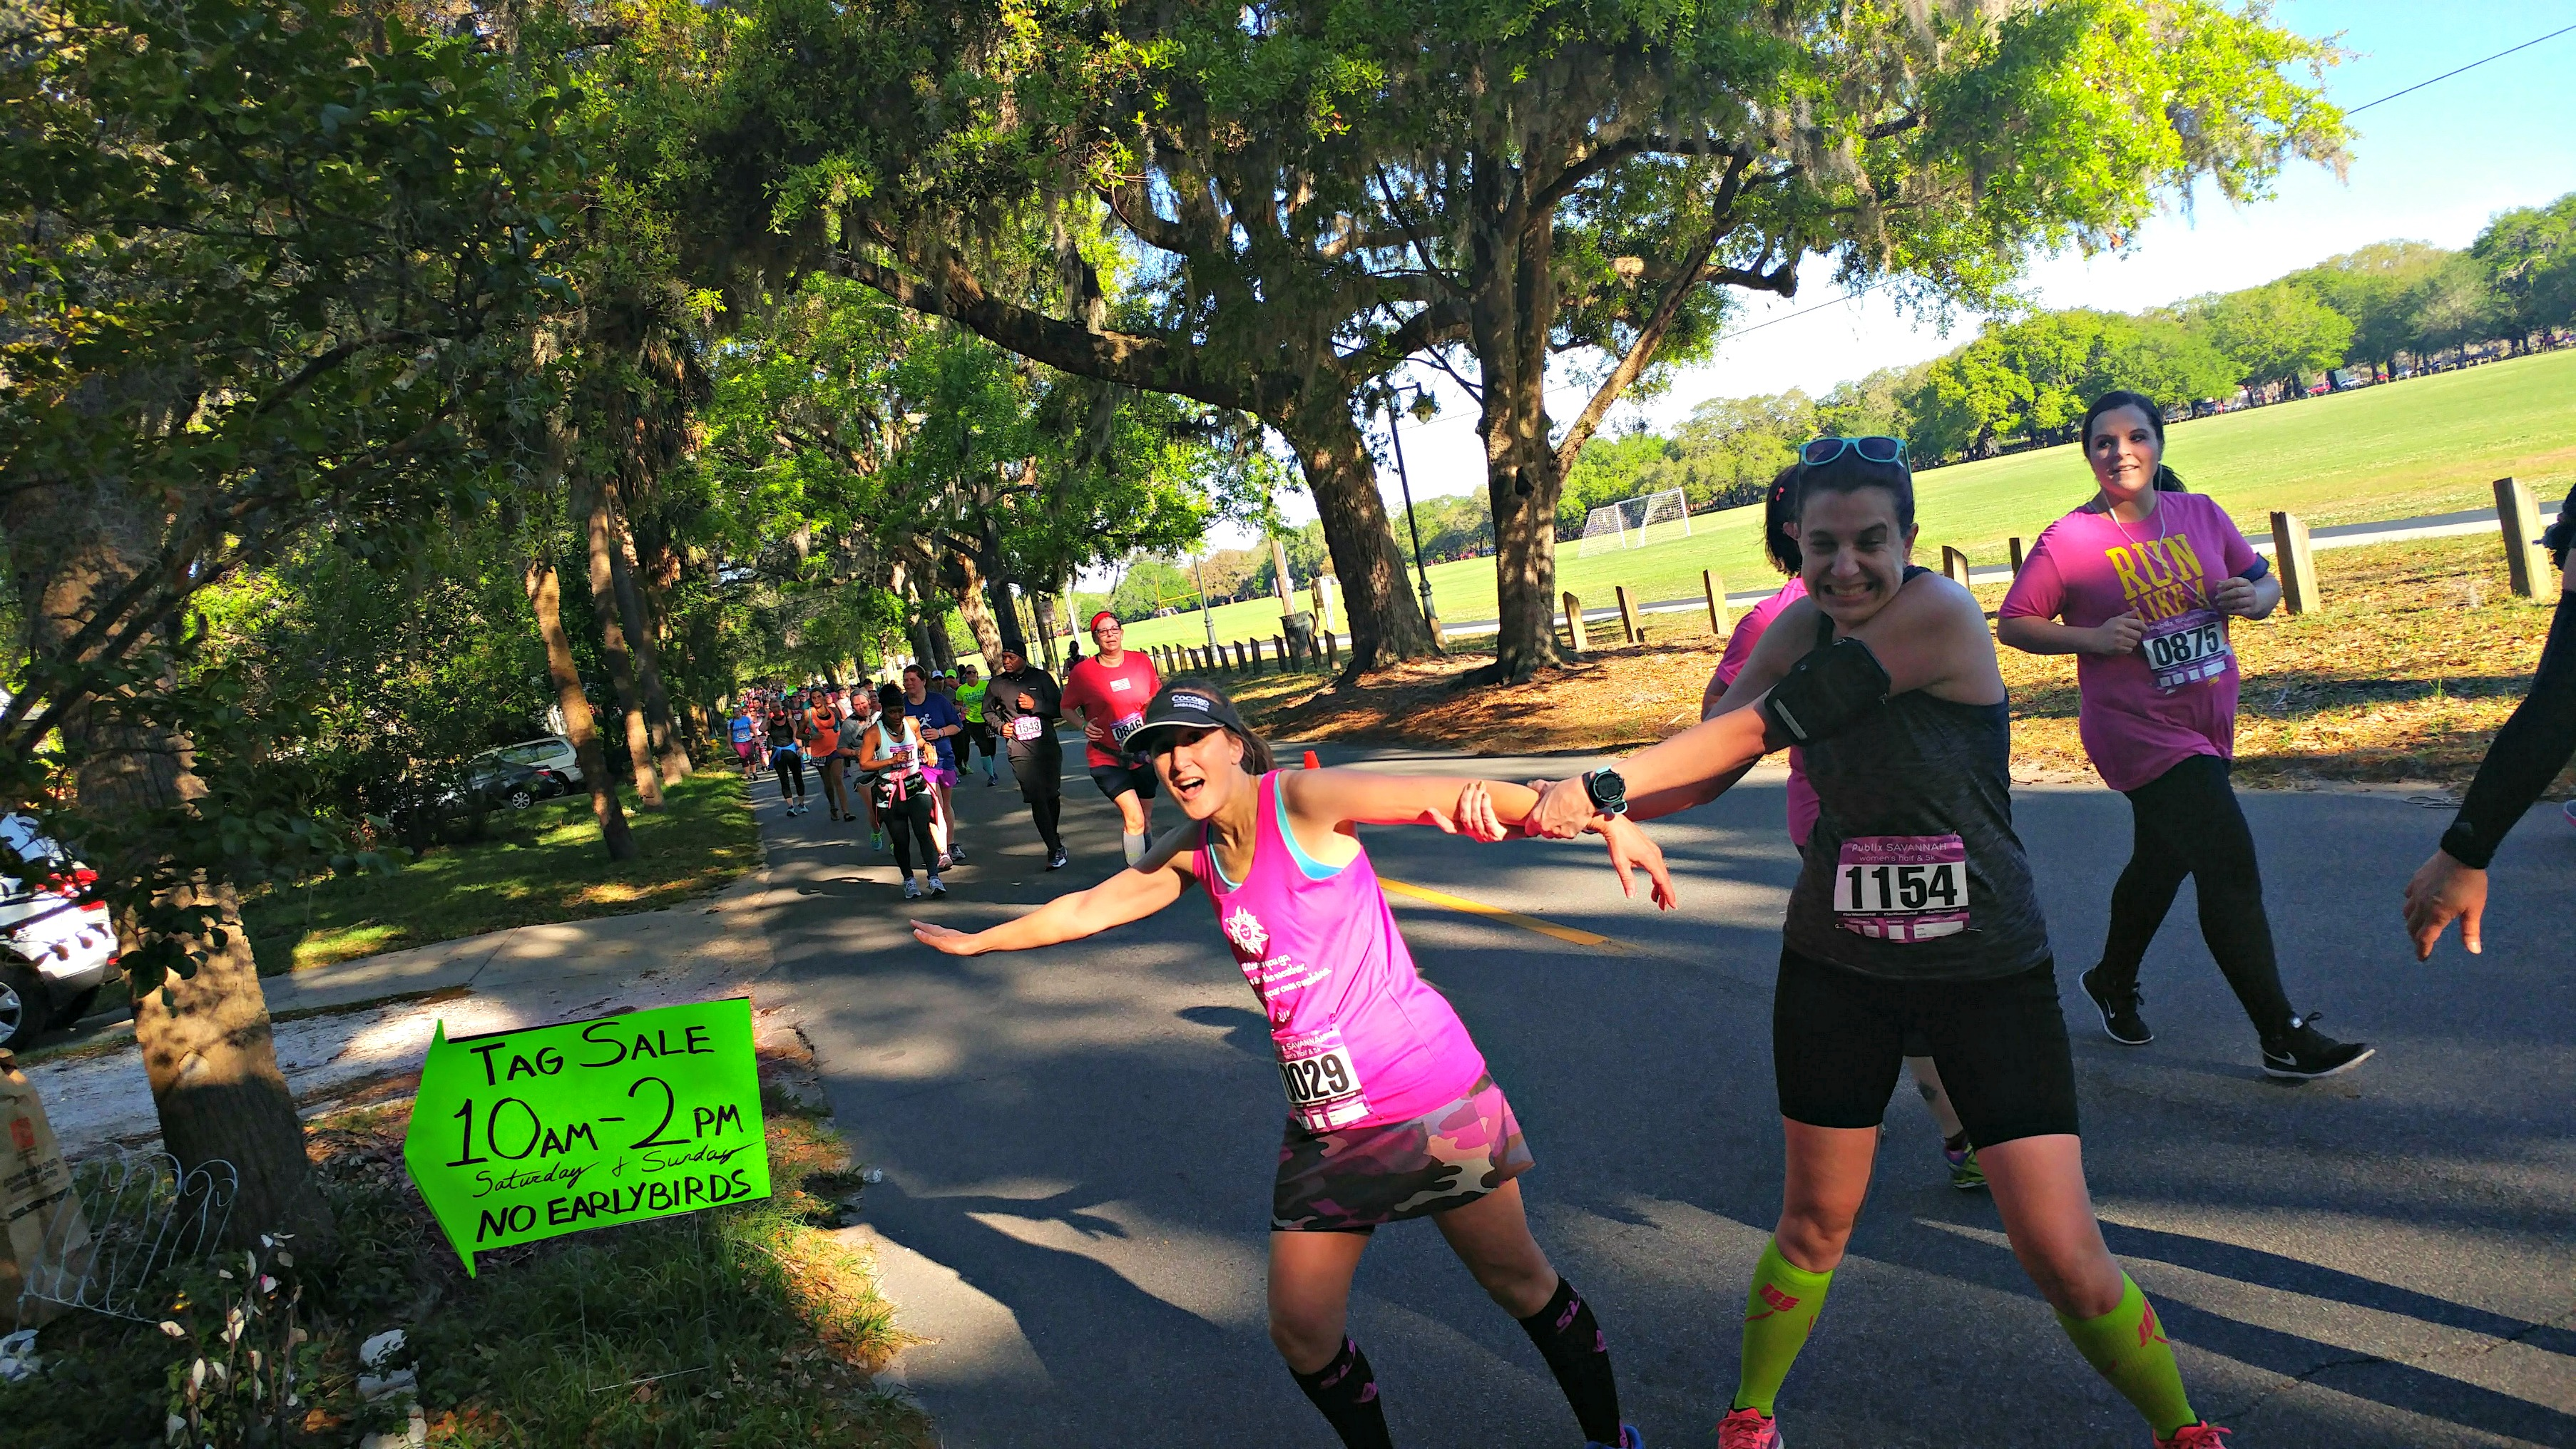 You can get easily distracted at the Savannah Women's Half Marathon.